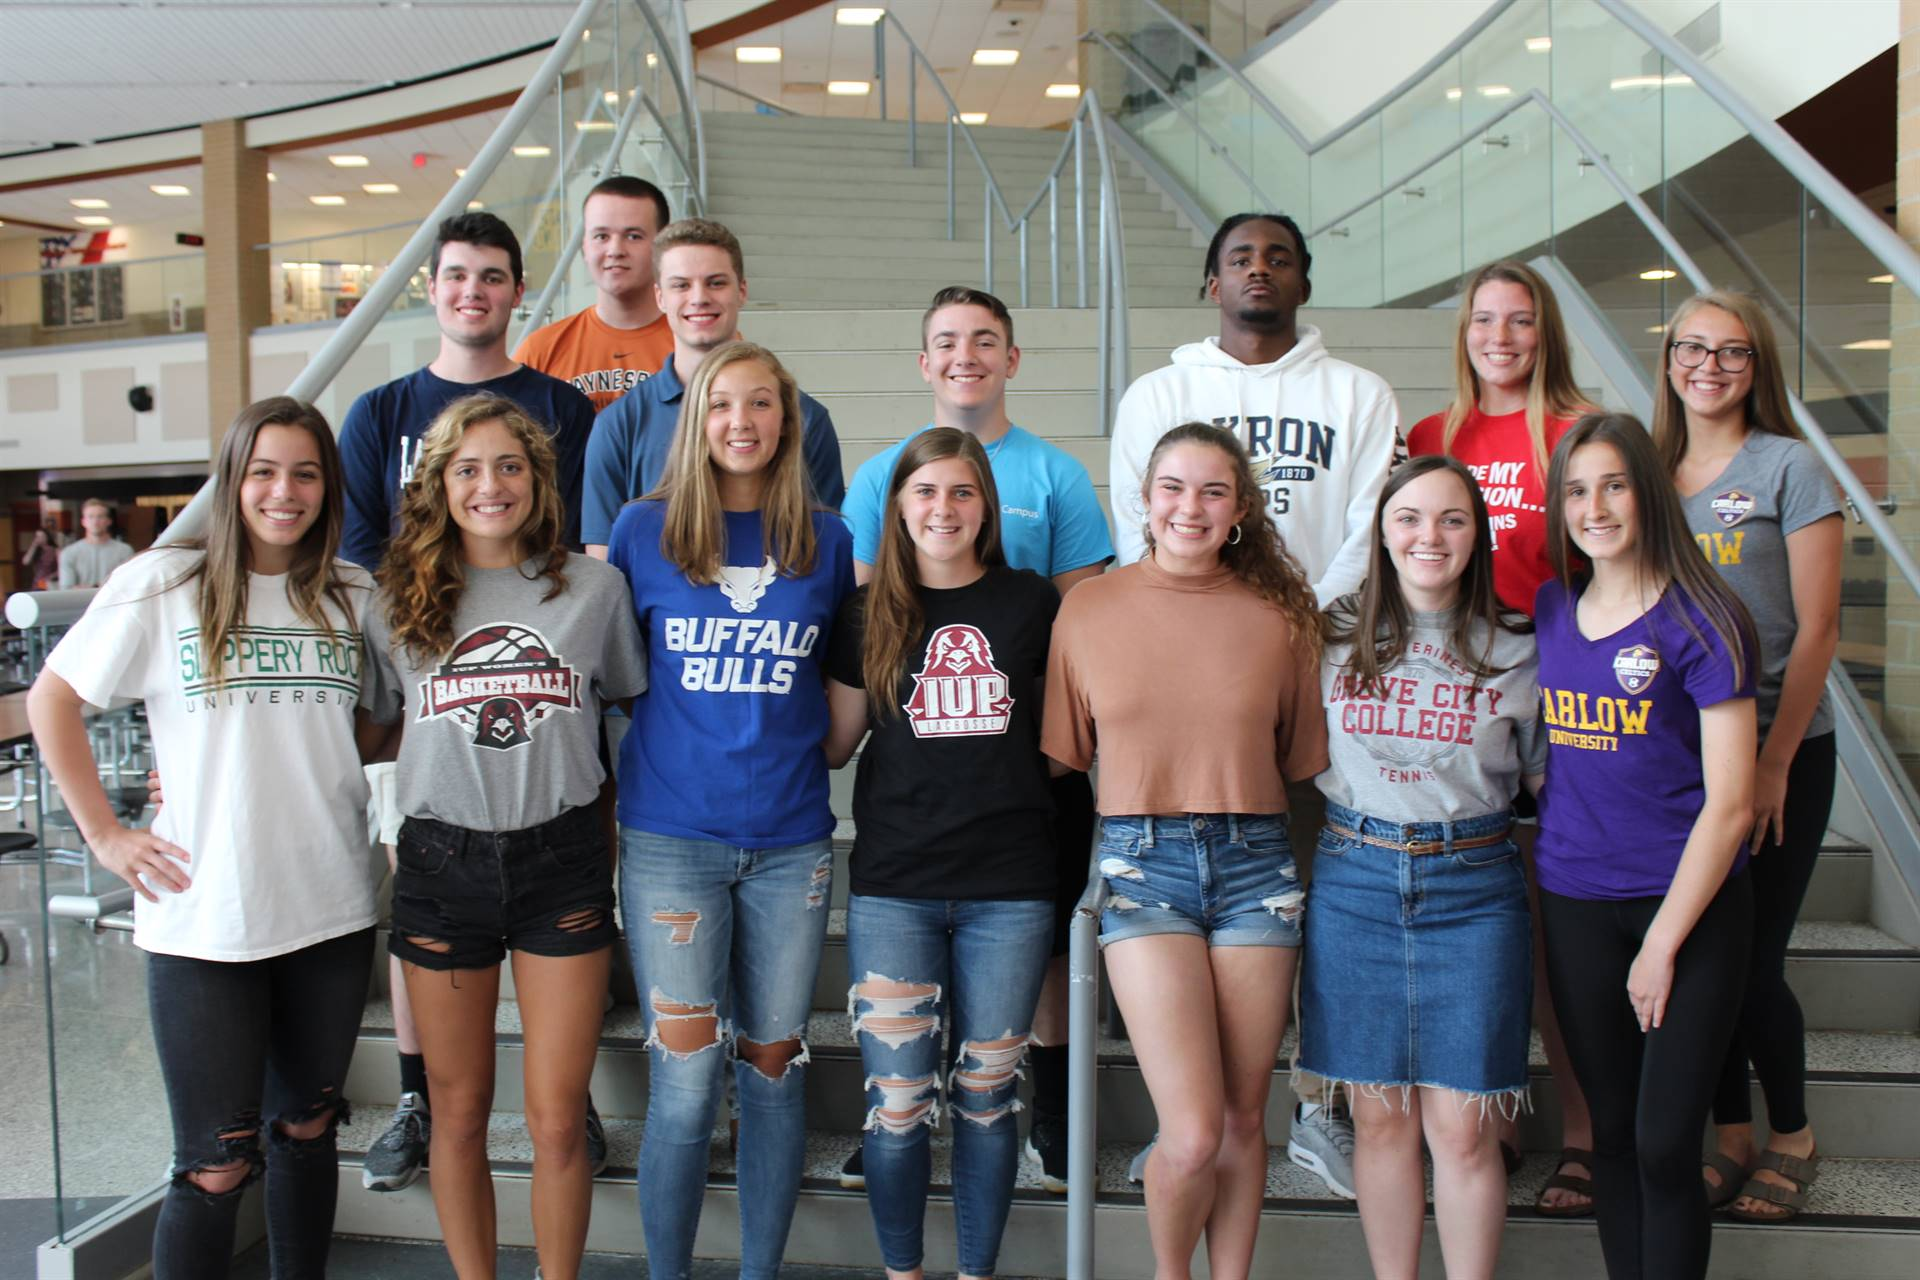 14 of the 15 college-bound student-athletes